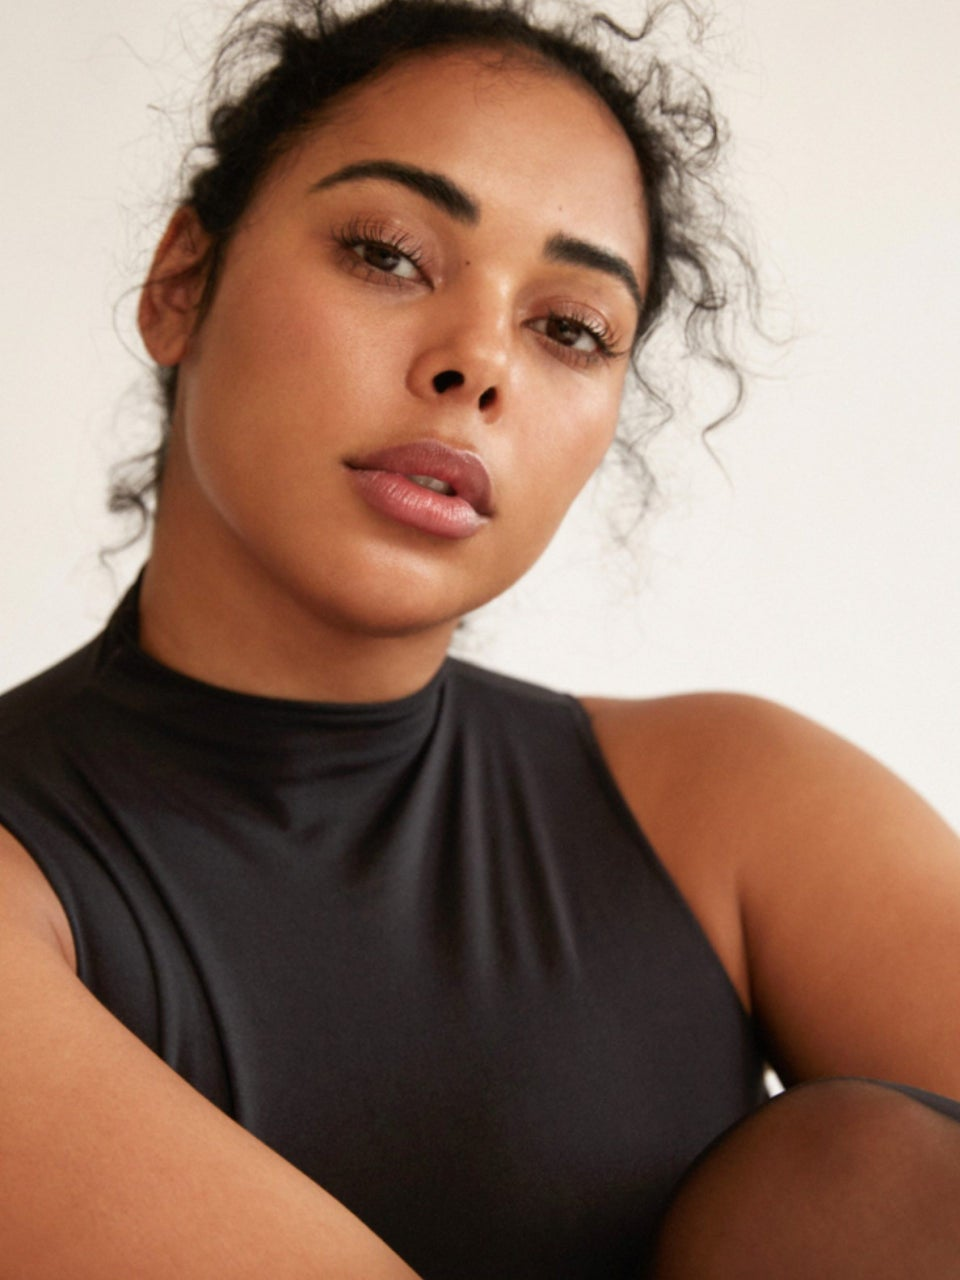 Tabria Majors On #Beylloween, Inclusivity And Her Journey To Self-Love In The Face Of Diet Culture